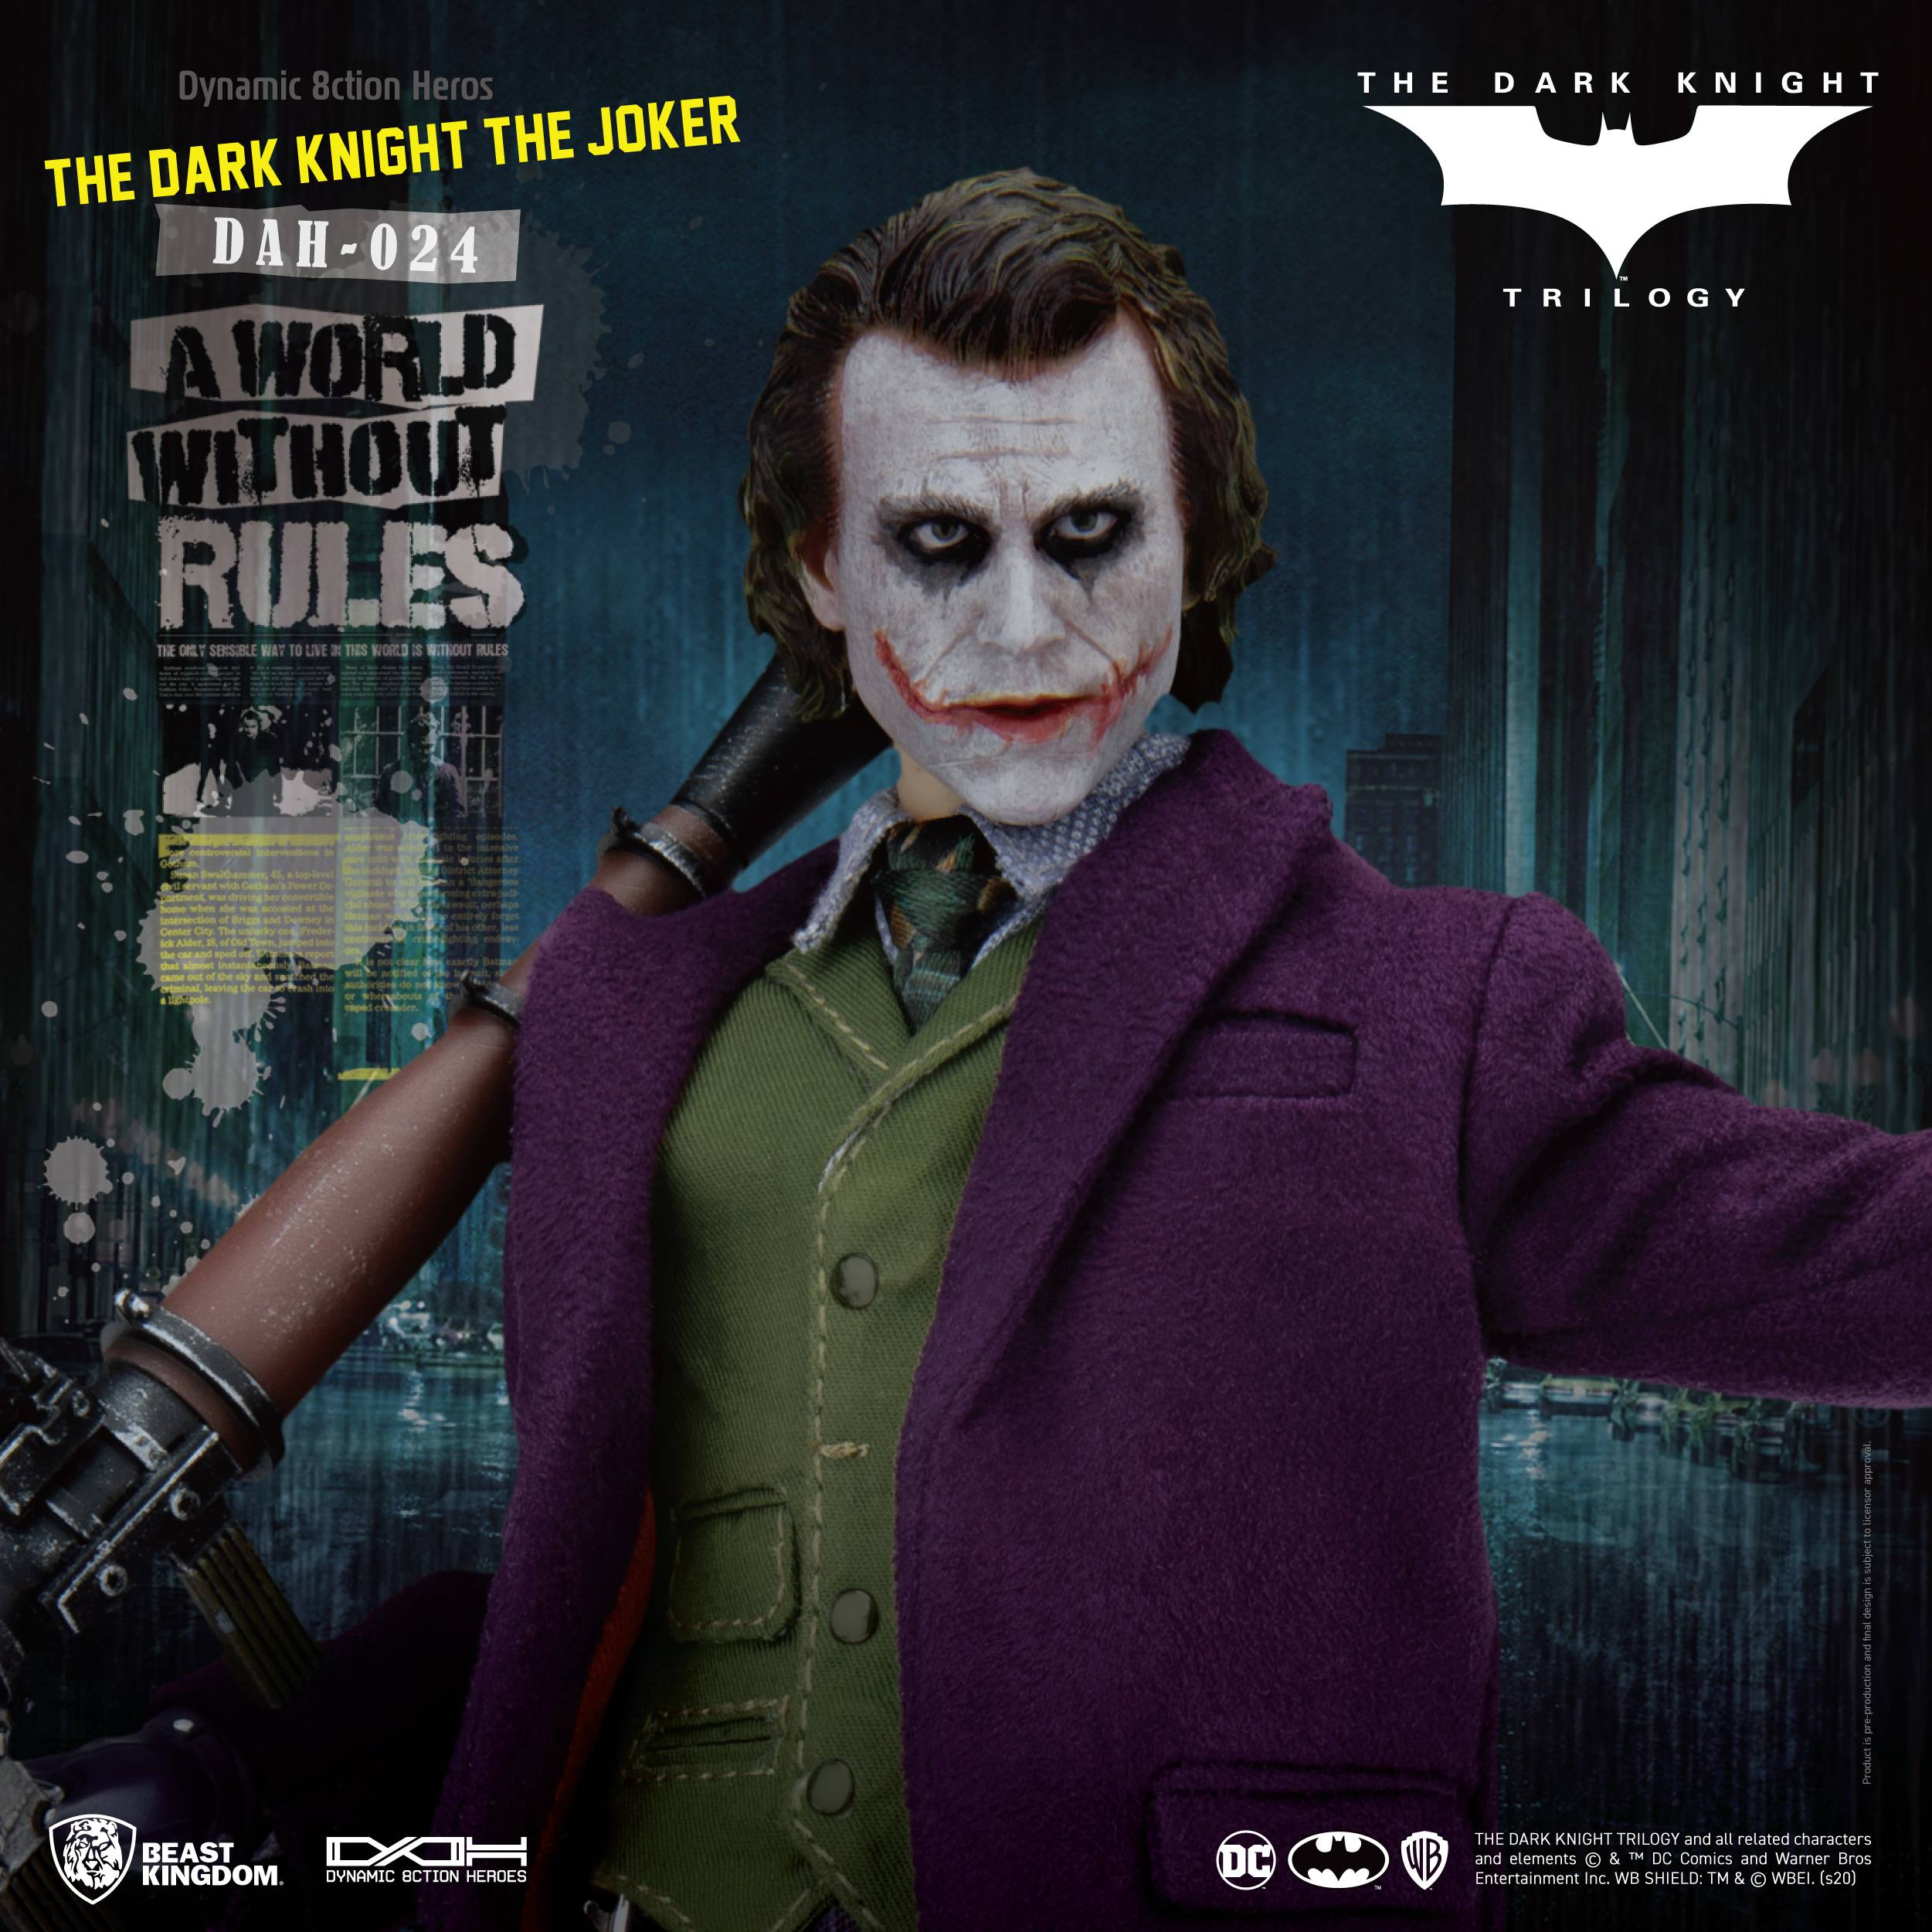 The Joker: Mindless anarchist or a product of society?